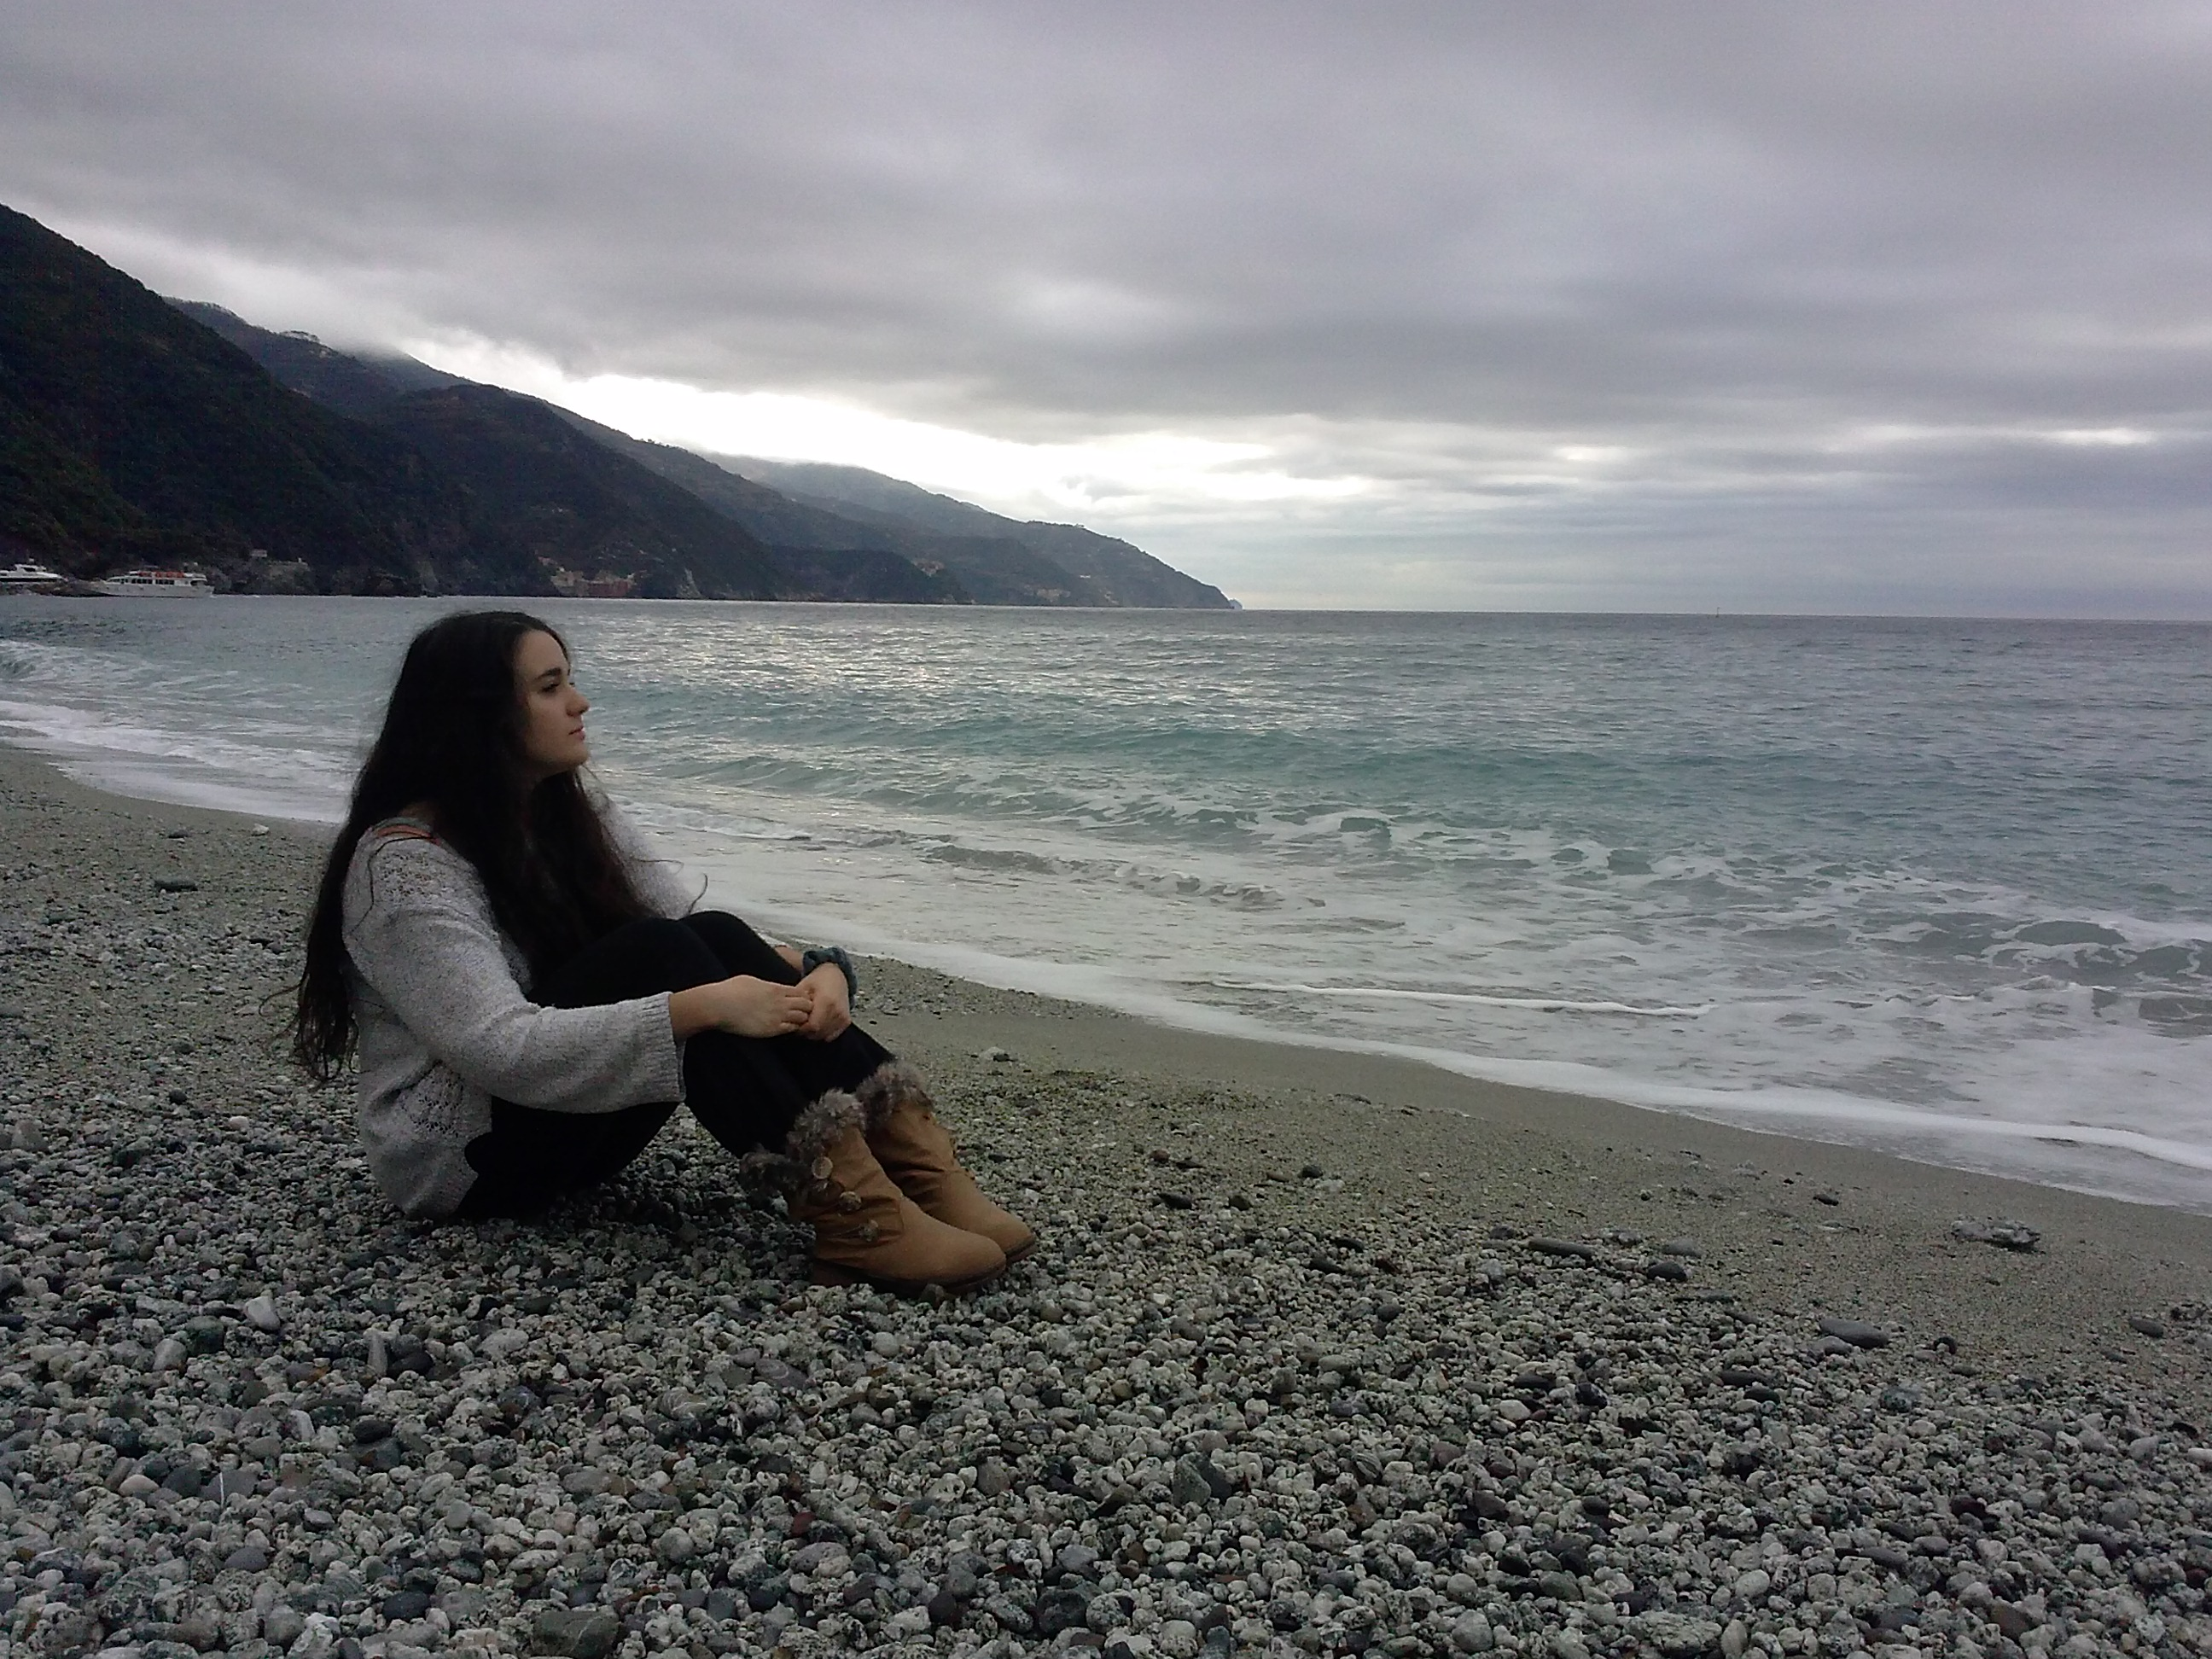 CAPAStudyAbroad_London_Fall2015_From_Alyssa_Reimenschneider_-_Trip_to_Cinque_Terre_Italy